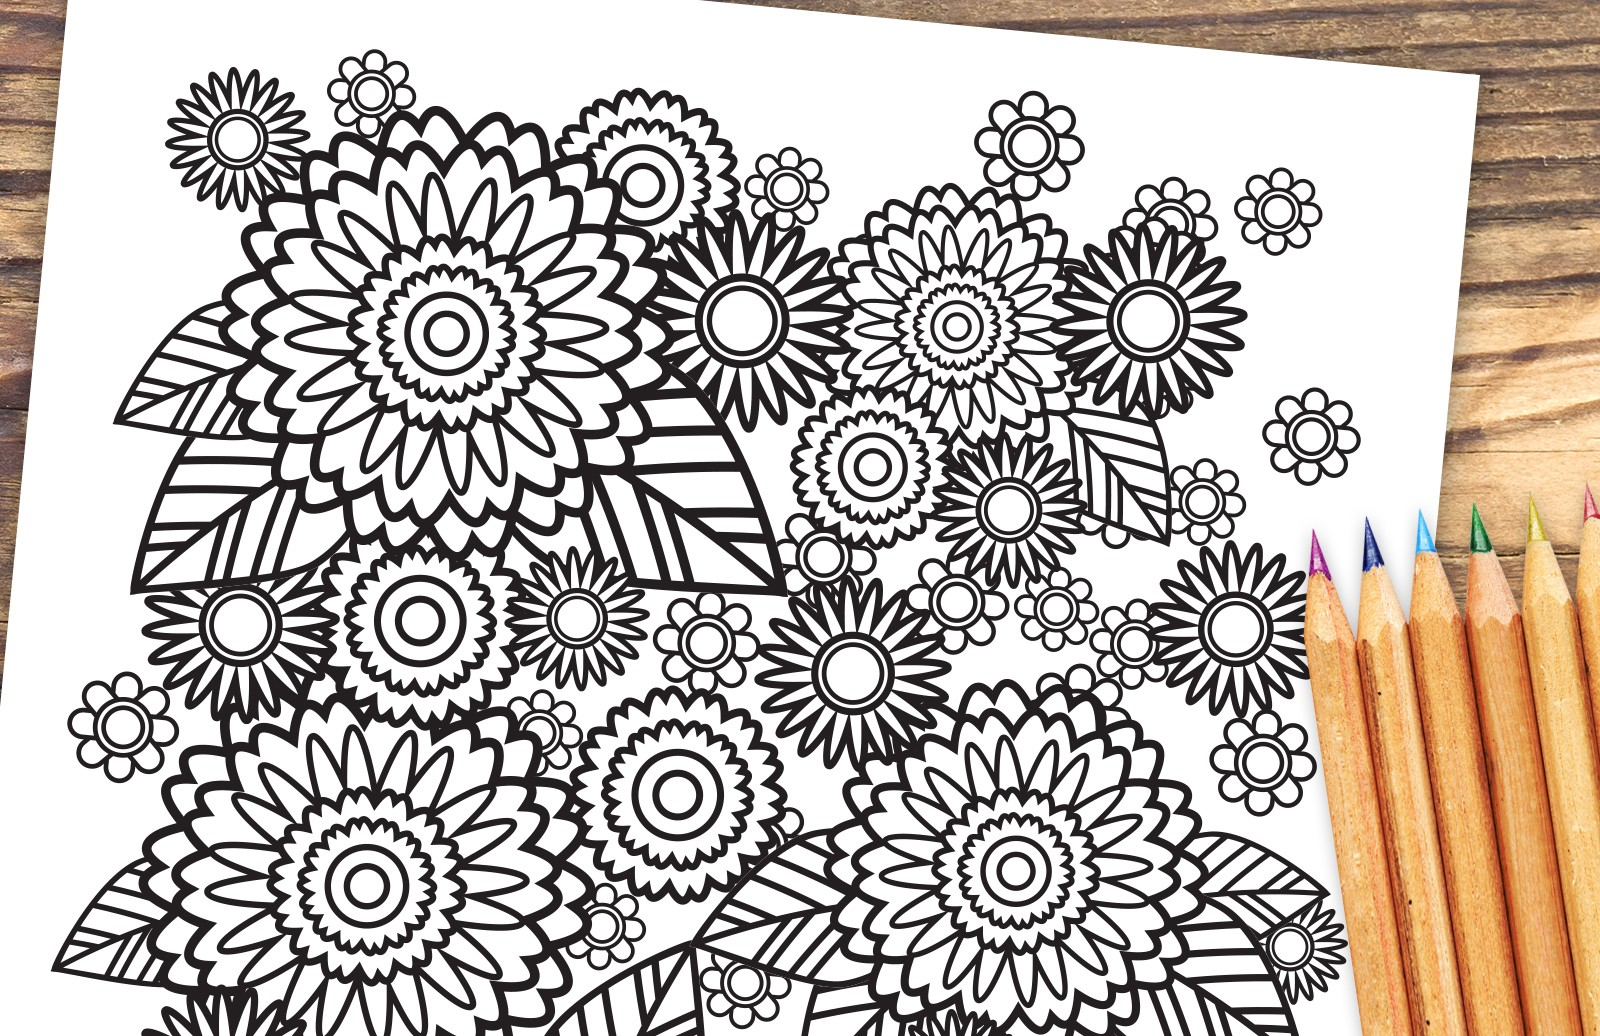 Stress relief coloring sheets free - Stress Relief Coloring Pages Preview 1